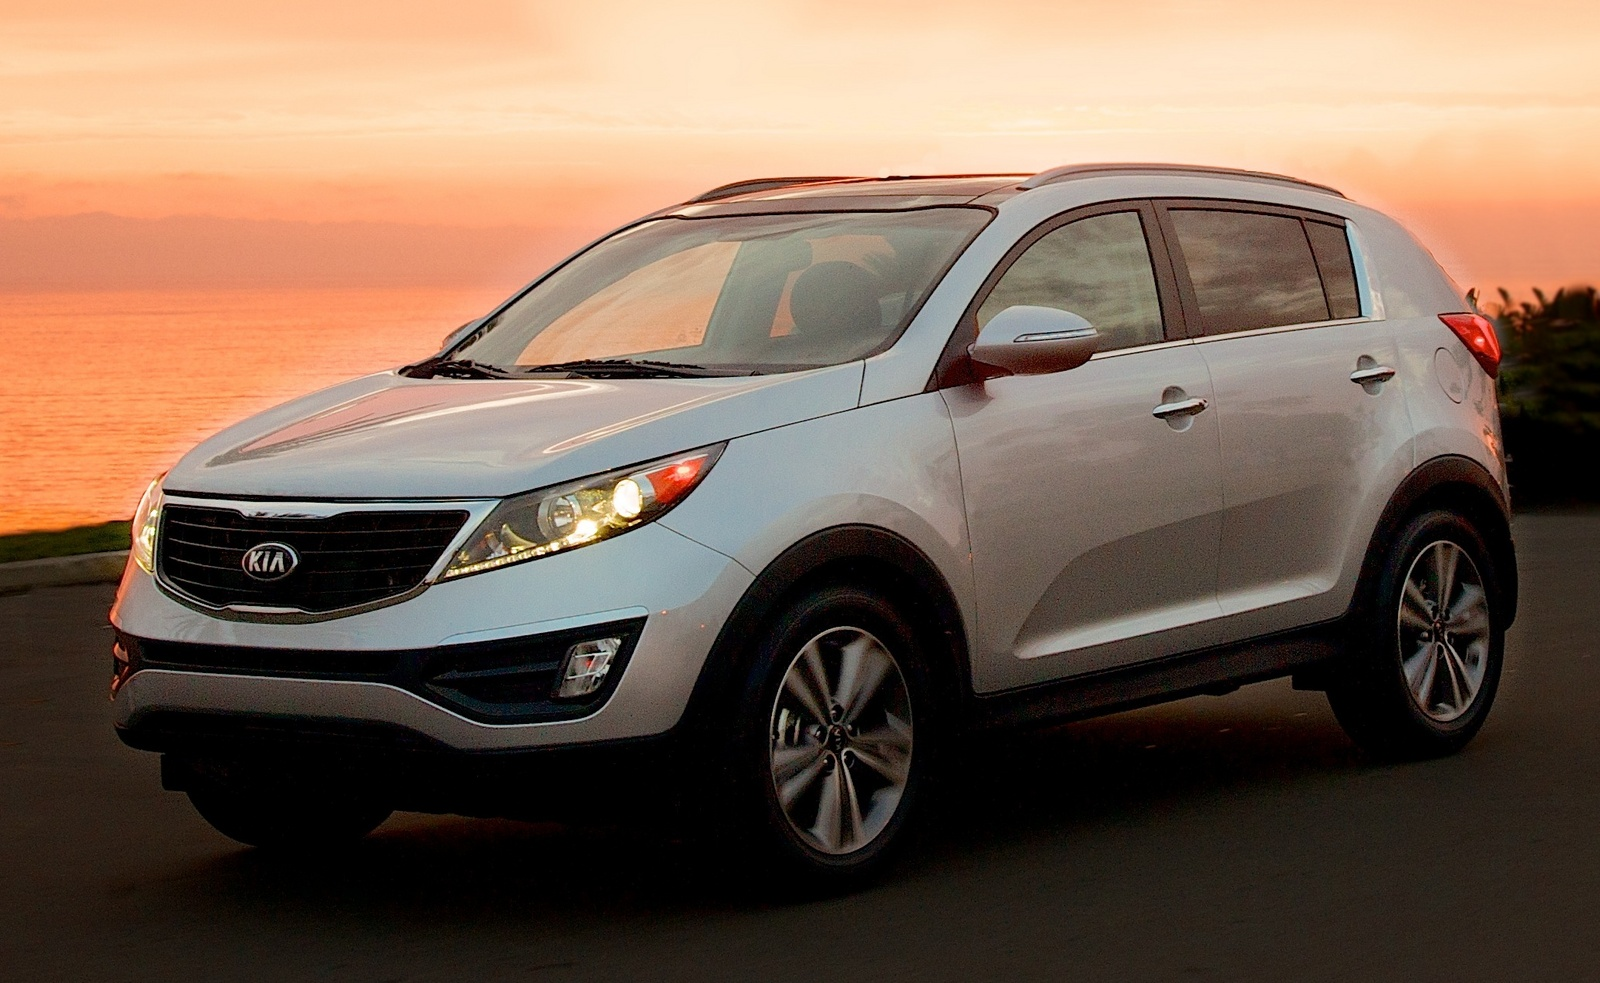 2015 kia sportage review cargurus. Black Bedroom Furniture Sets. Home Design Ideas